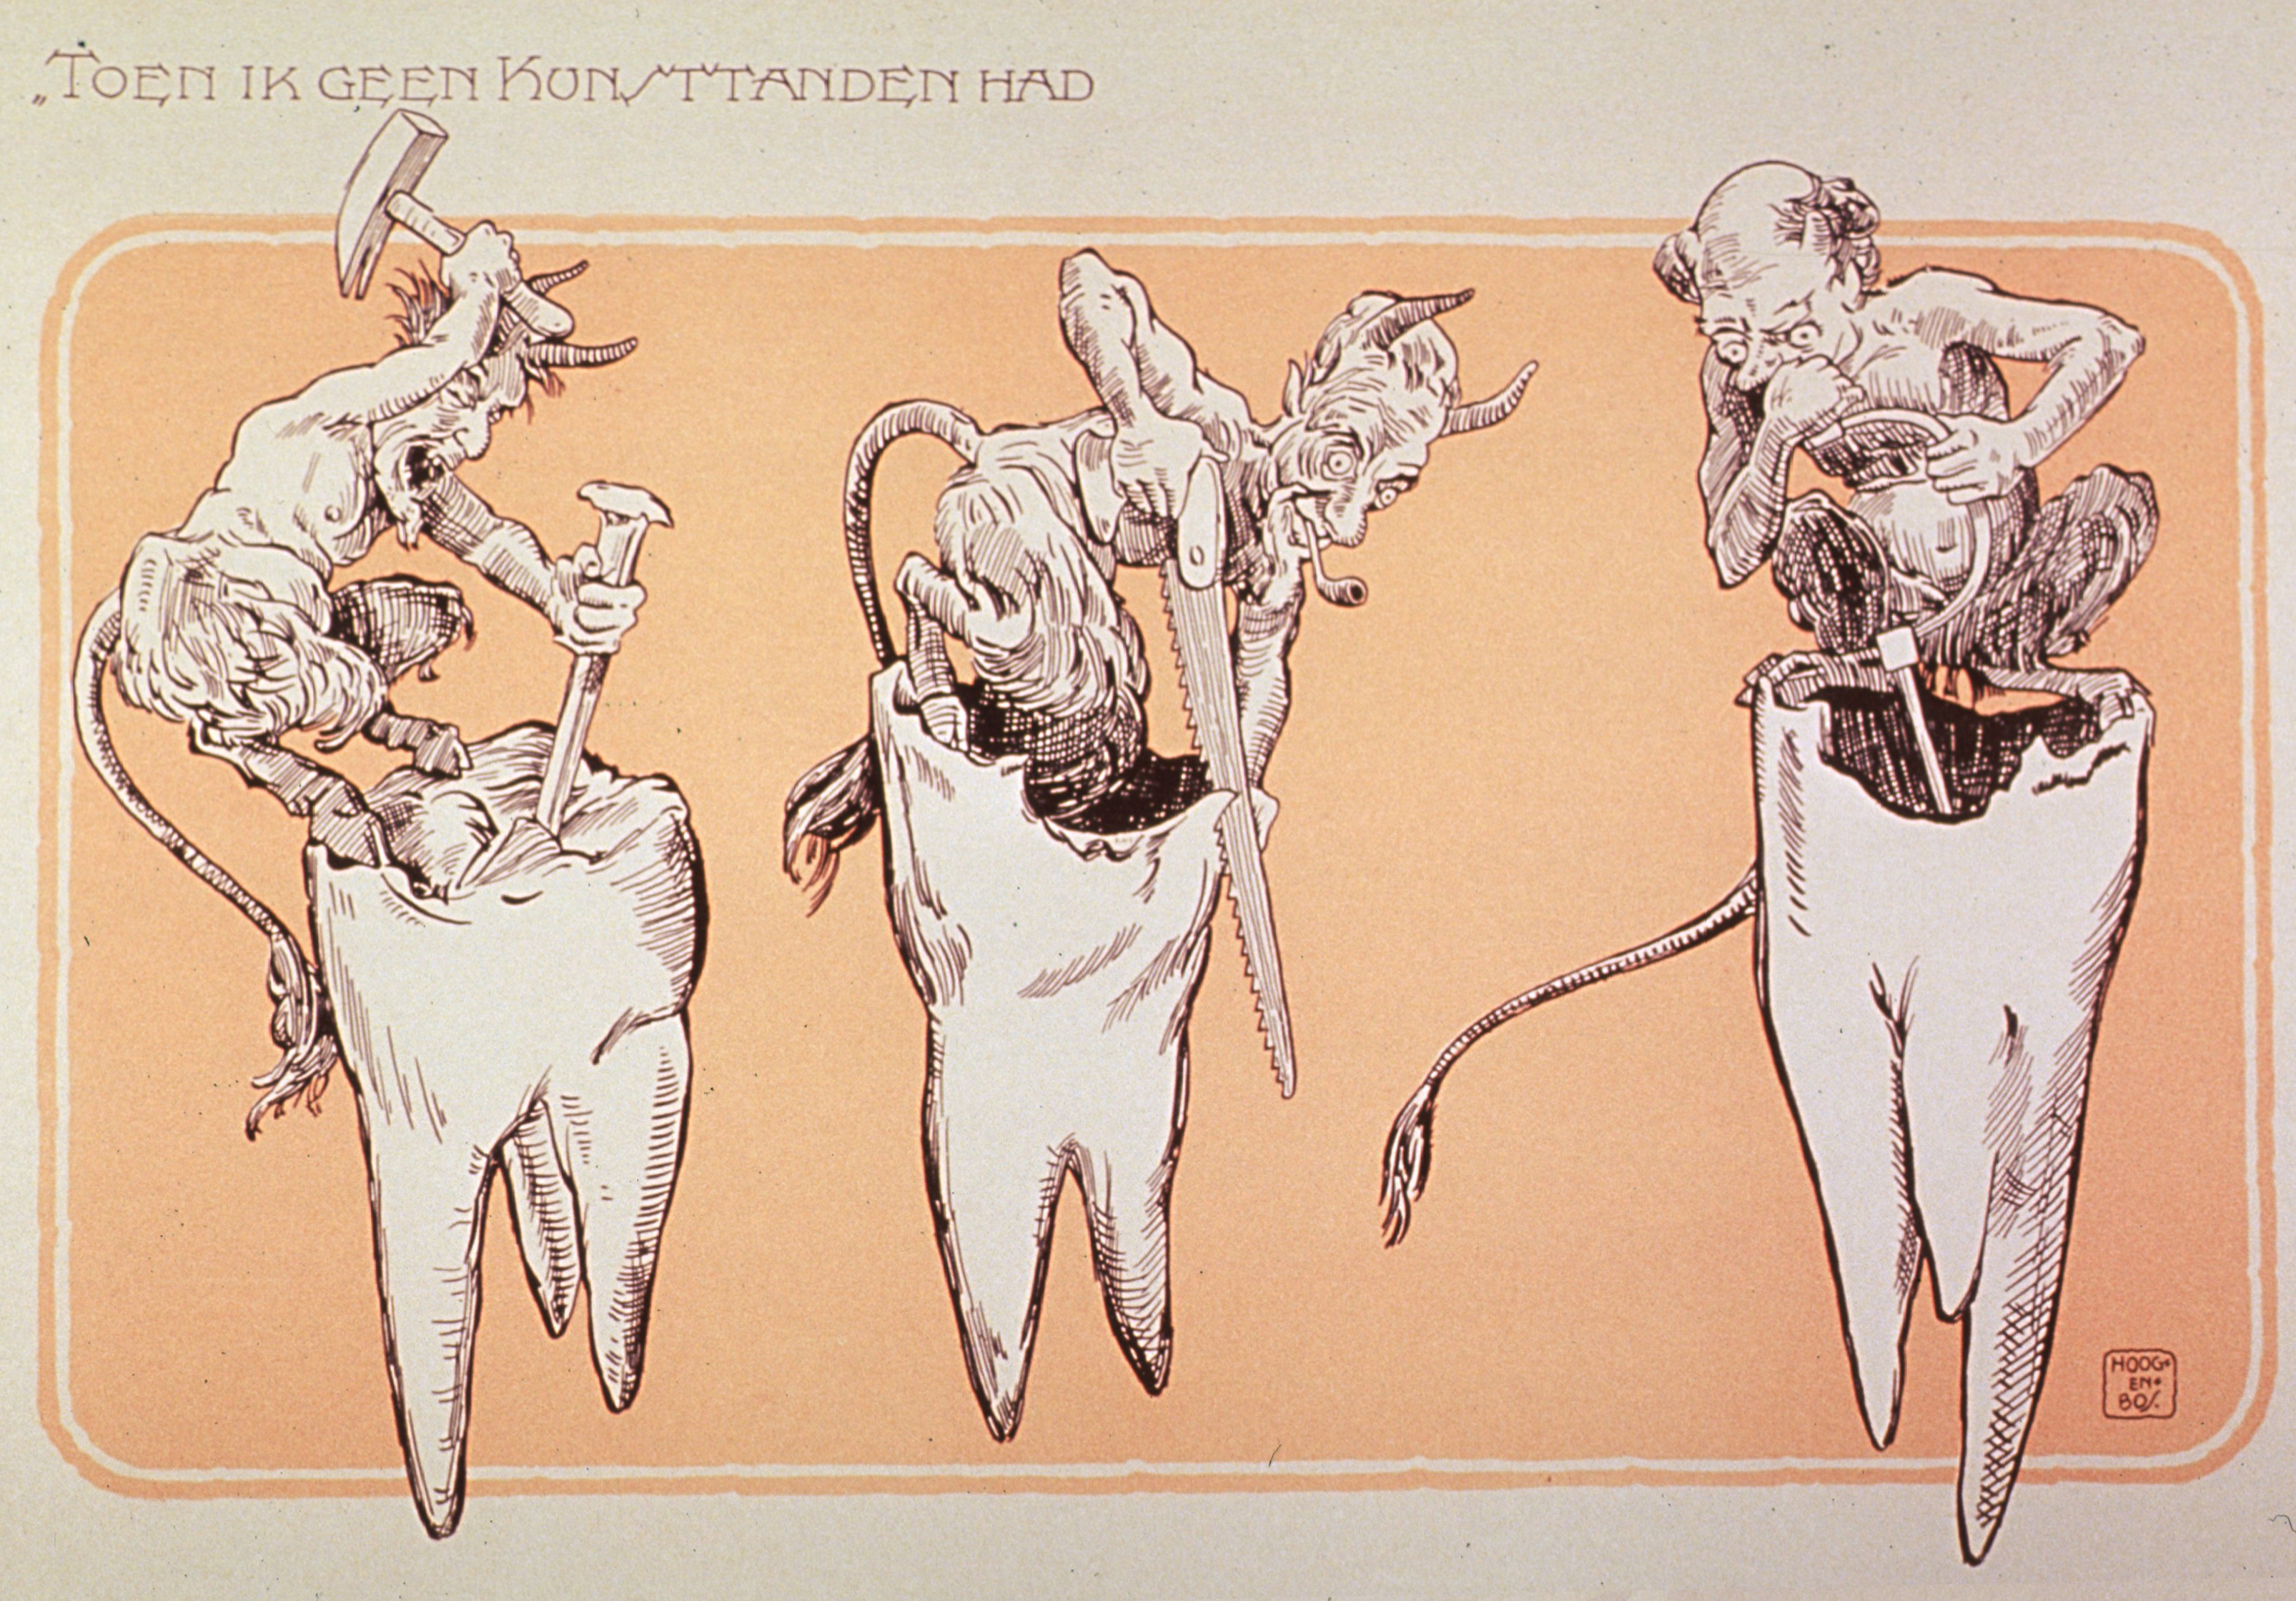 Dutch caricature of tooth decay